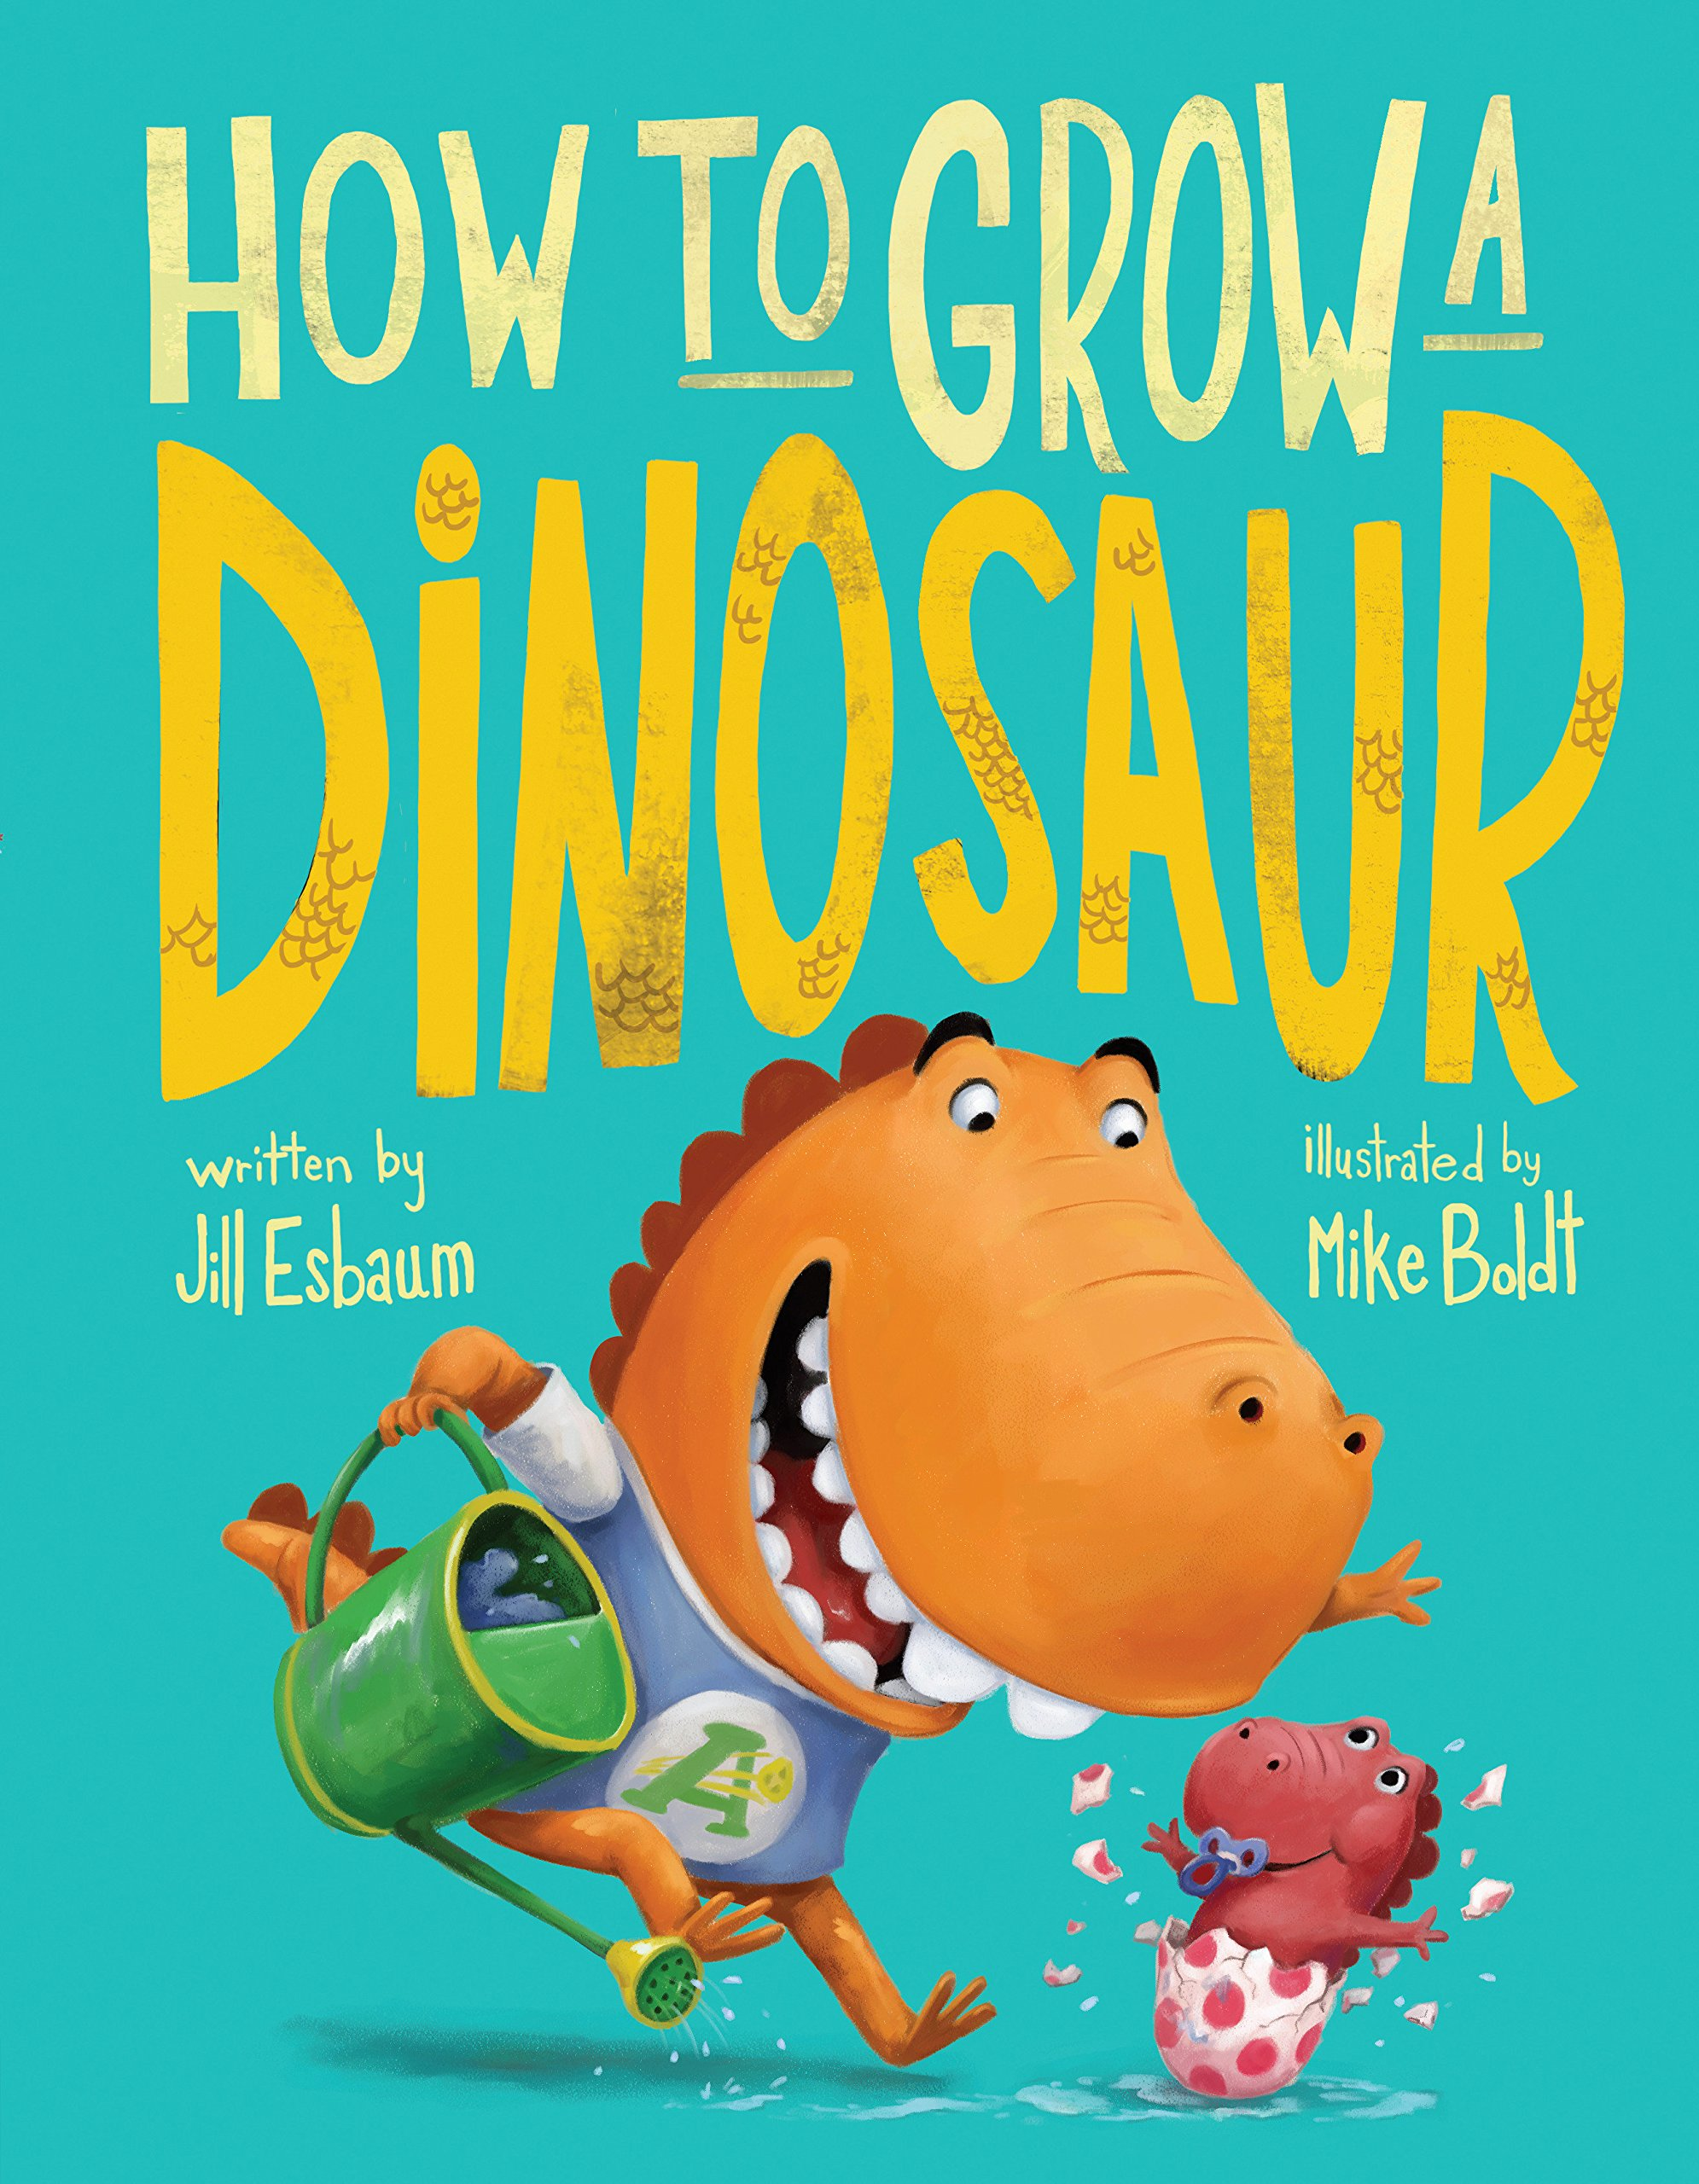 This is an image of a book cover called How to Grow a Dinosaur.